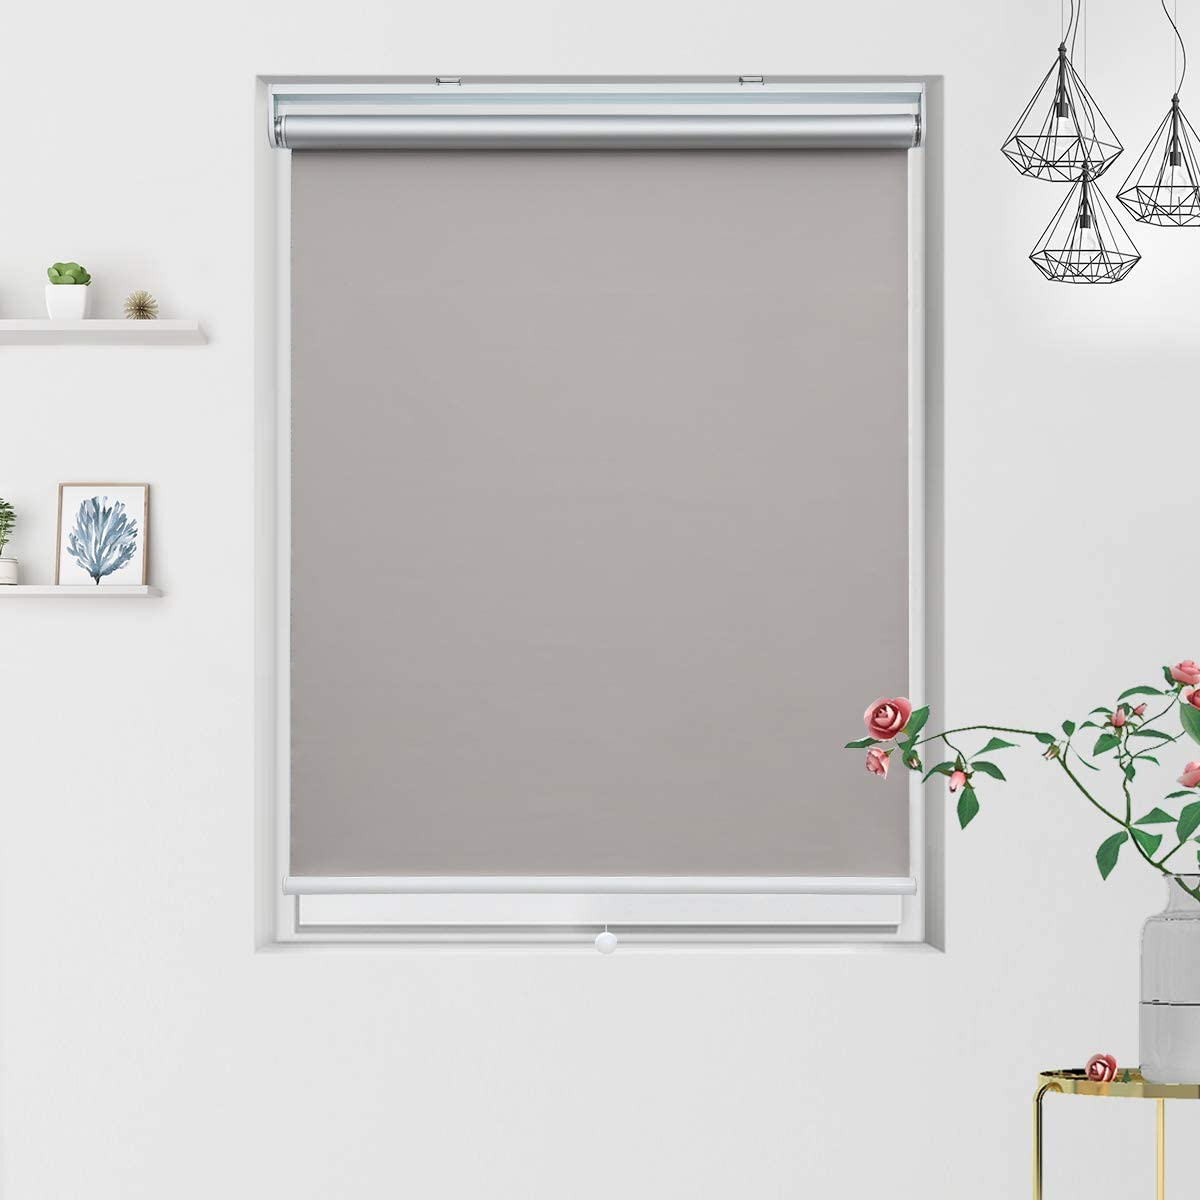 36 Window Blinds Blackout Roller Shade with Cordless Spring System, Thermal and Room Darkening for Window Indoor Use, 36 x 72 inch, Grey